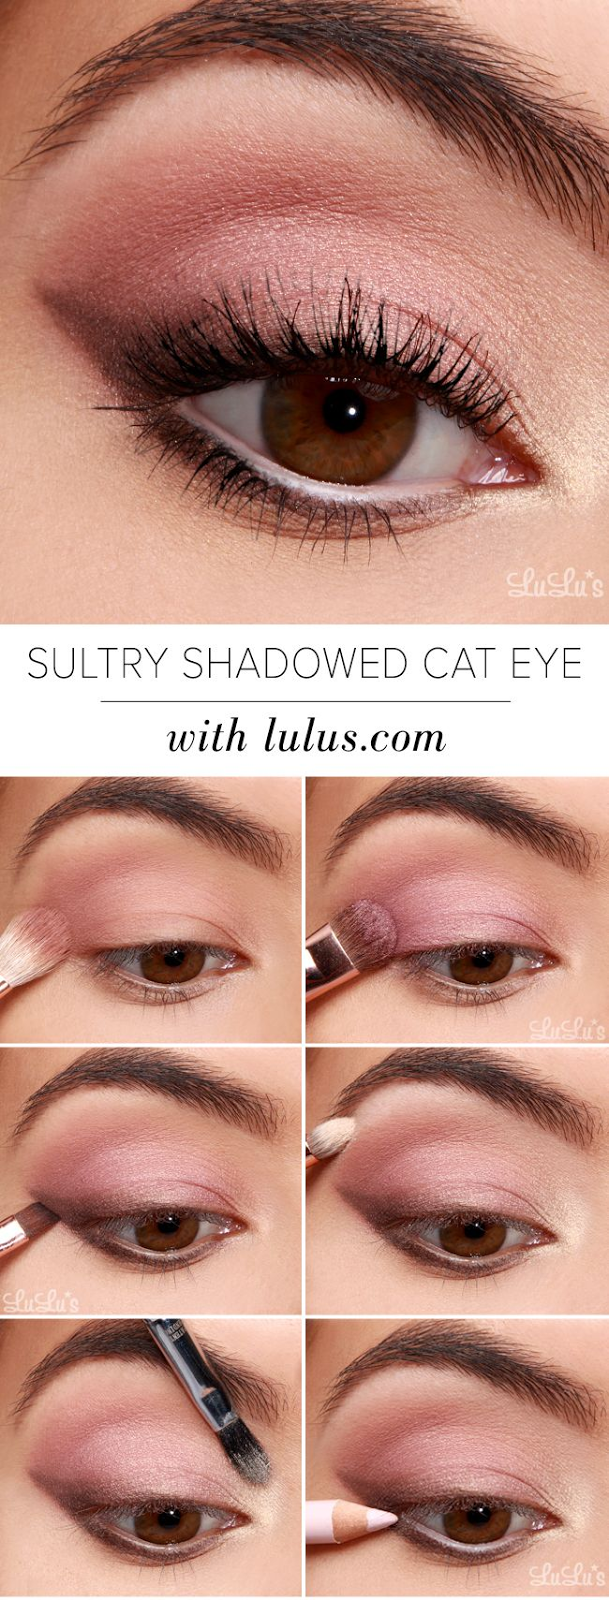 How-to Sultry Shadowed Cat Eye Tutorial